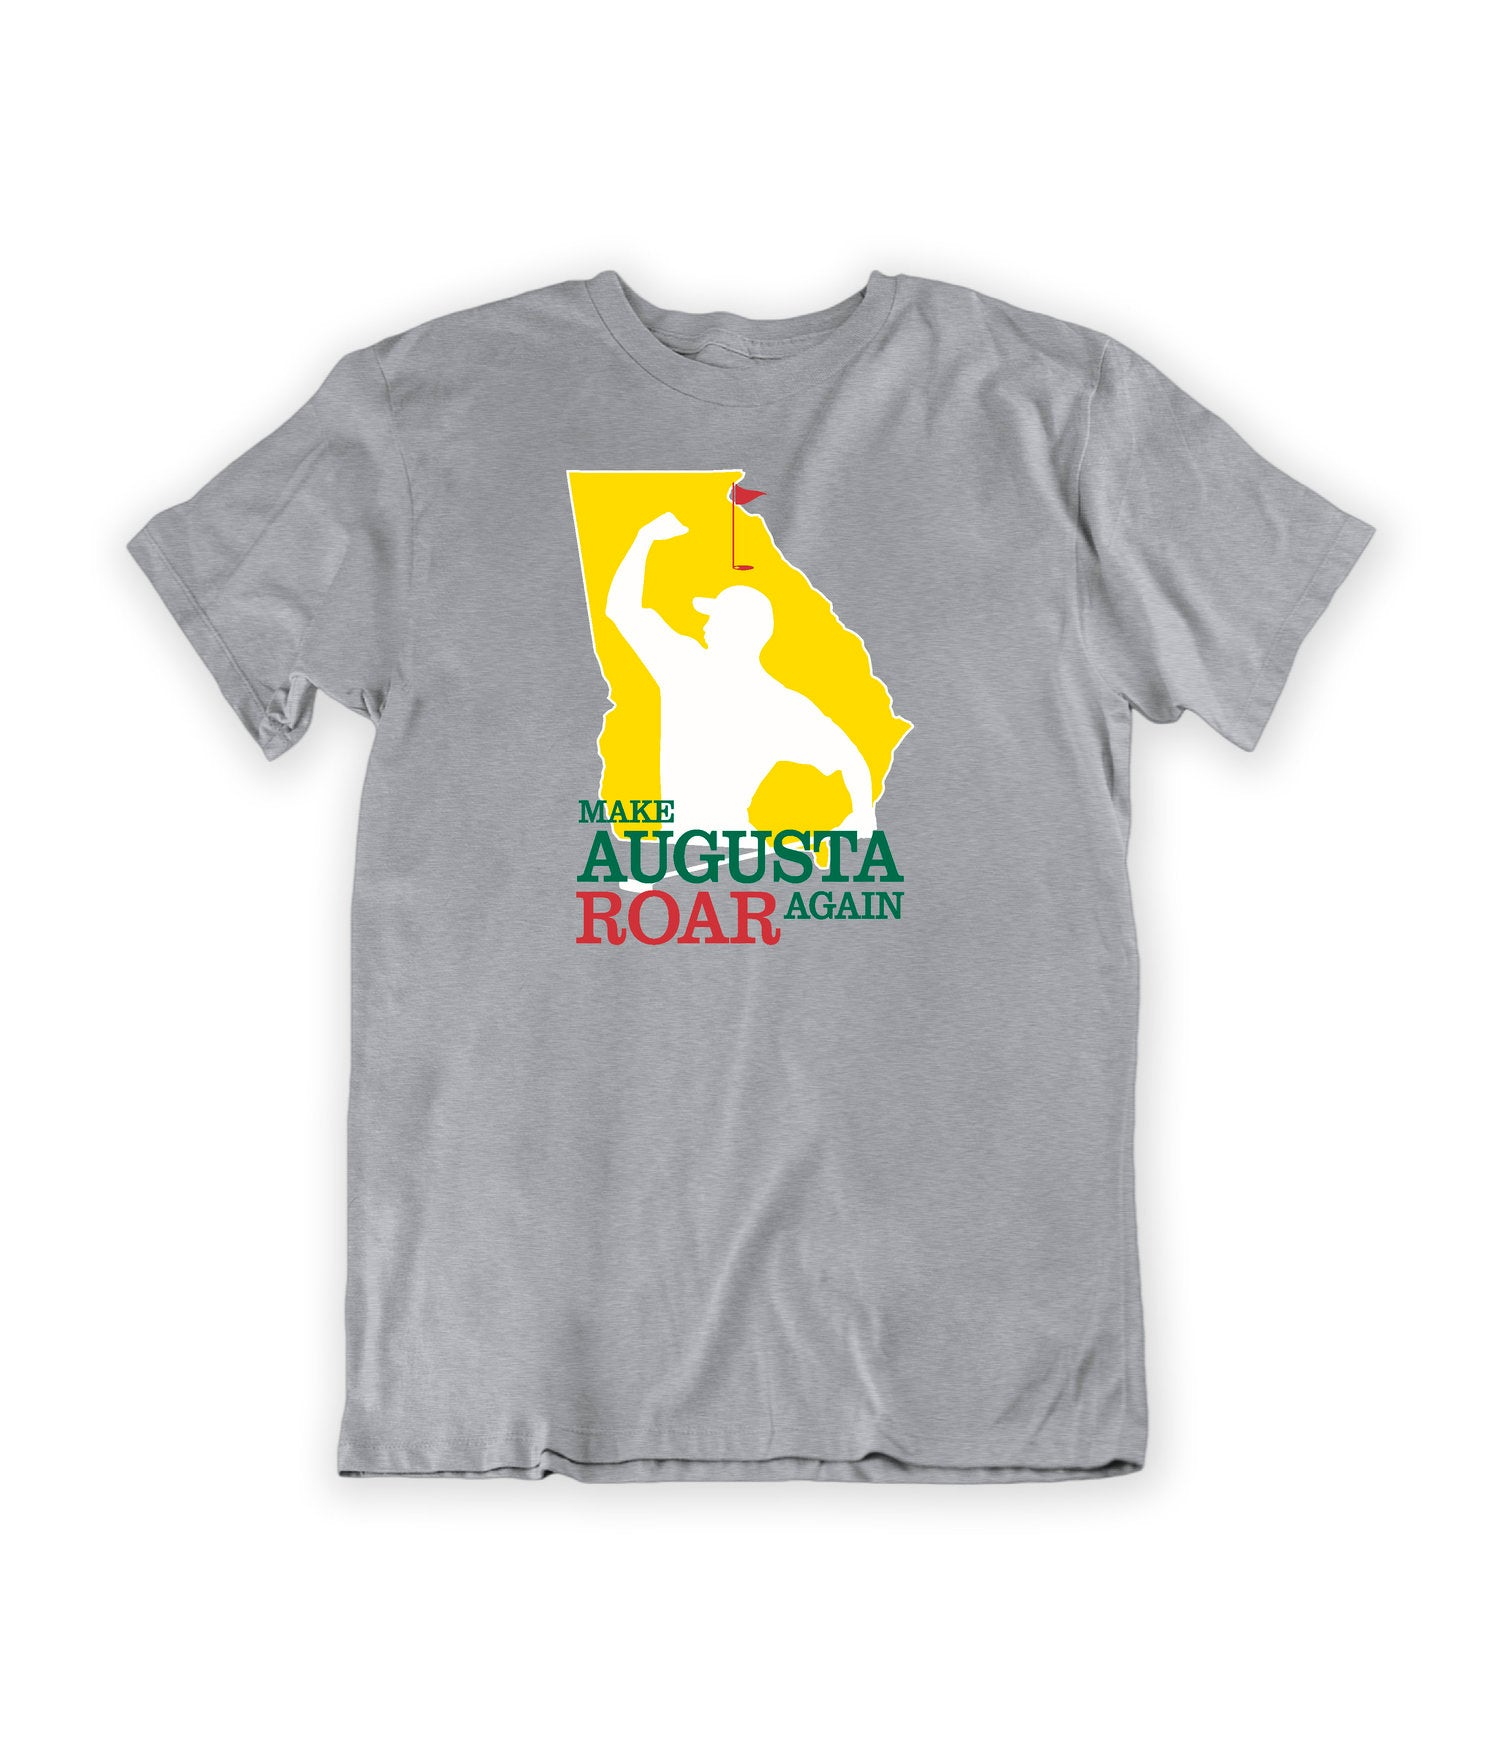 Make Augusta Roar Again